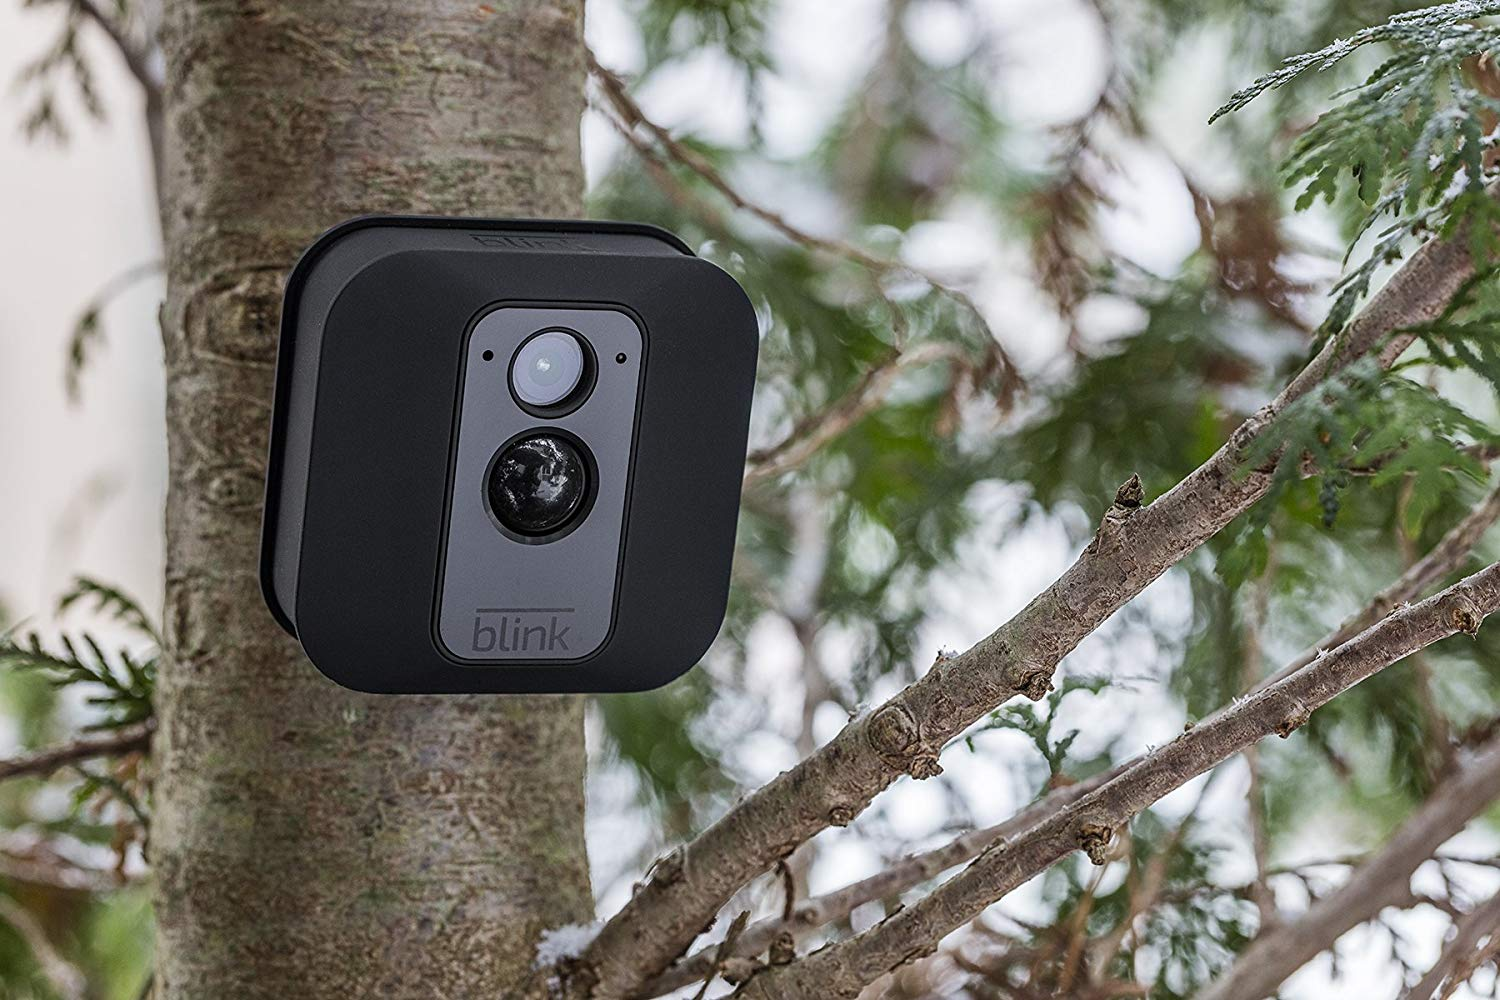 Security Cameras mount anywhere